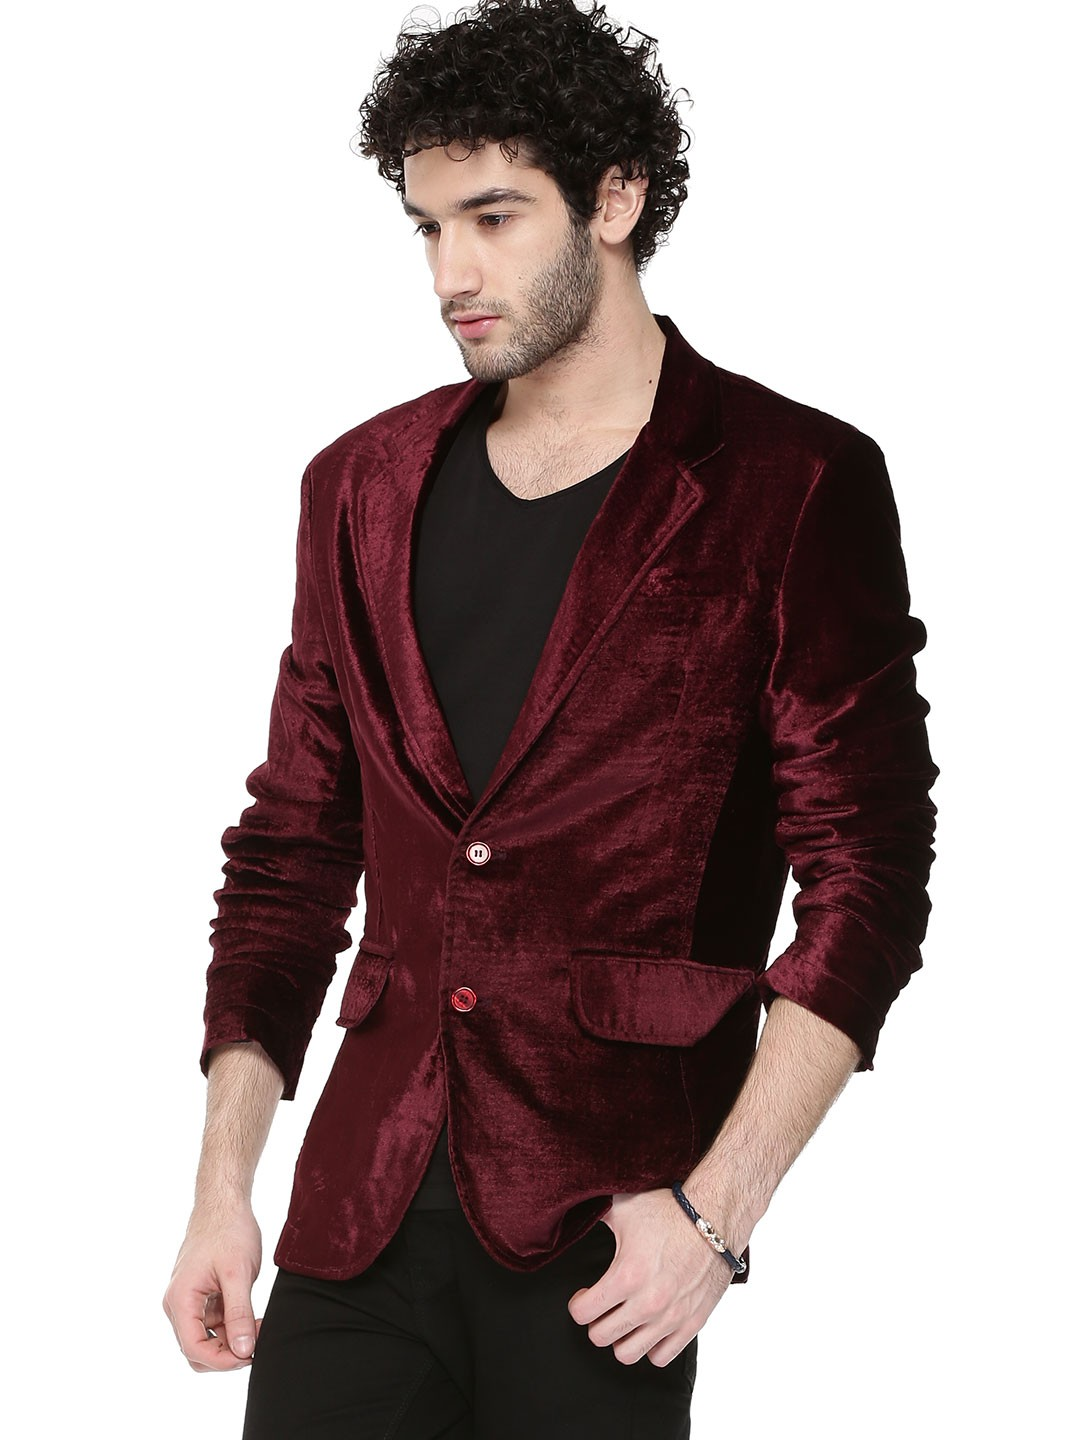 Buy mens Blazers online in India at exploreblogirvd.gq Shop Blazers for men from latest mens Blazers shopping collection picked from more than stores @ Koovia. Buy mens Blazers online in India at exploreblogirvd.gq Shop Blazers for men from latest mens Blazers shopping collection picked from more than stores @ Koovia.